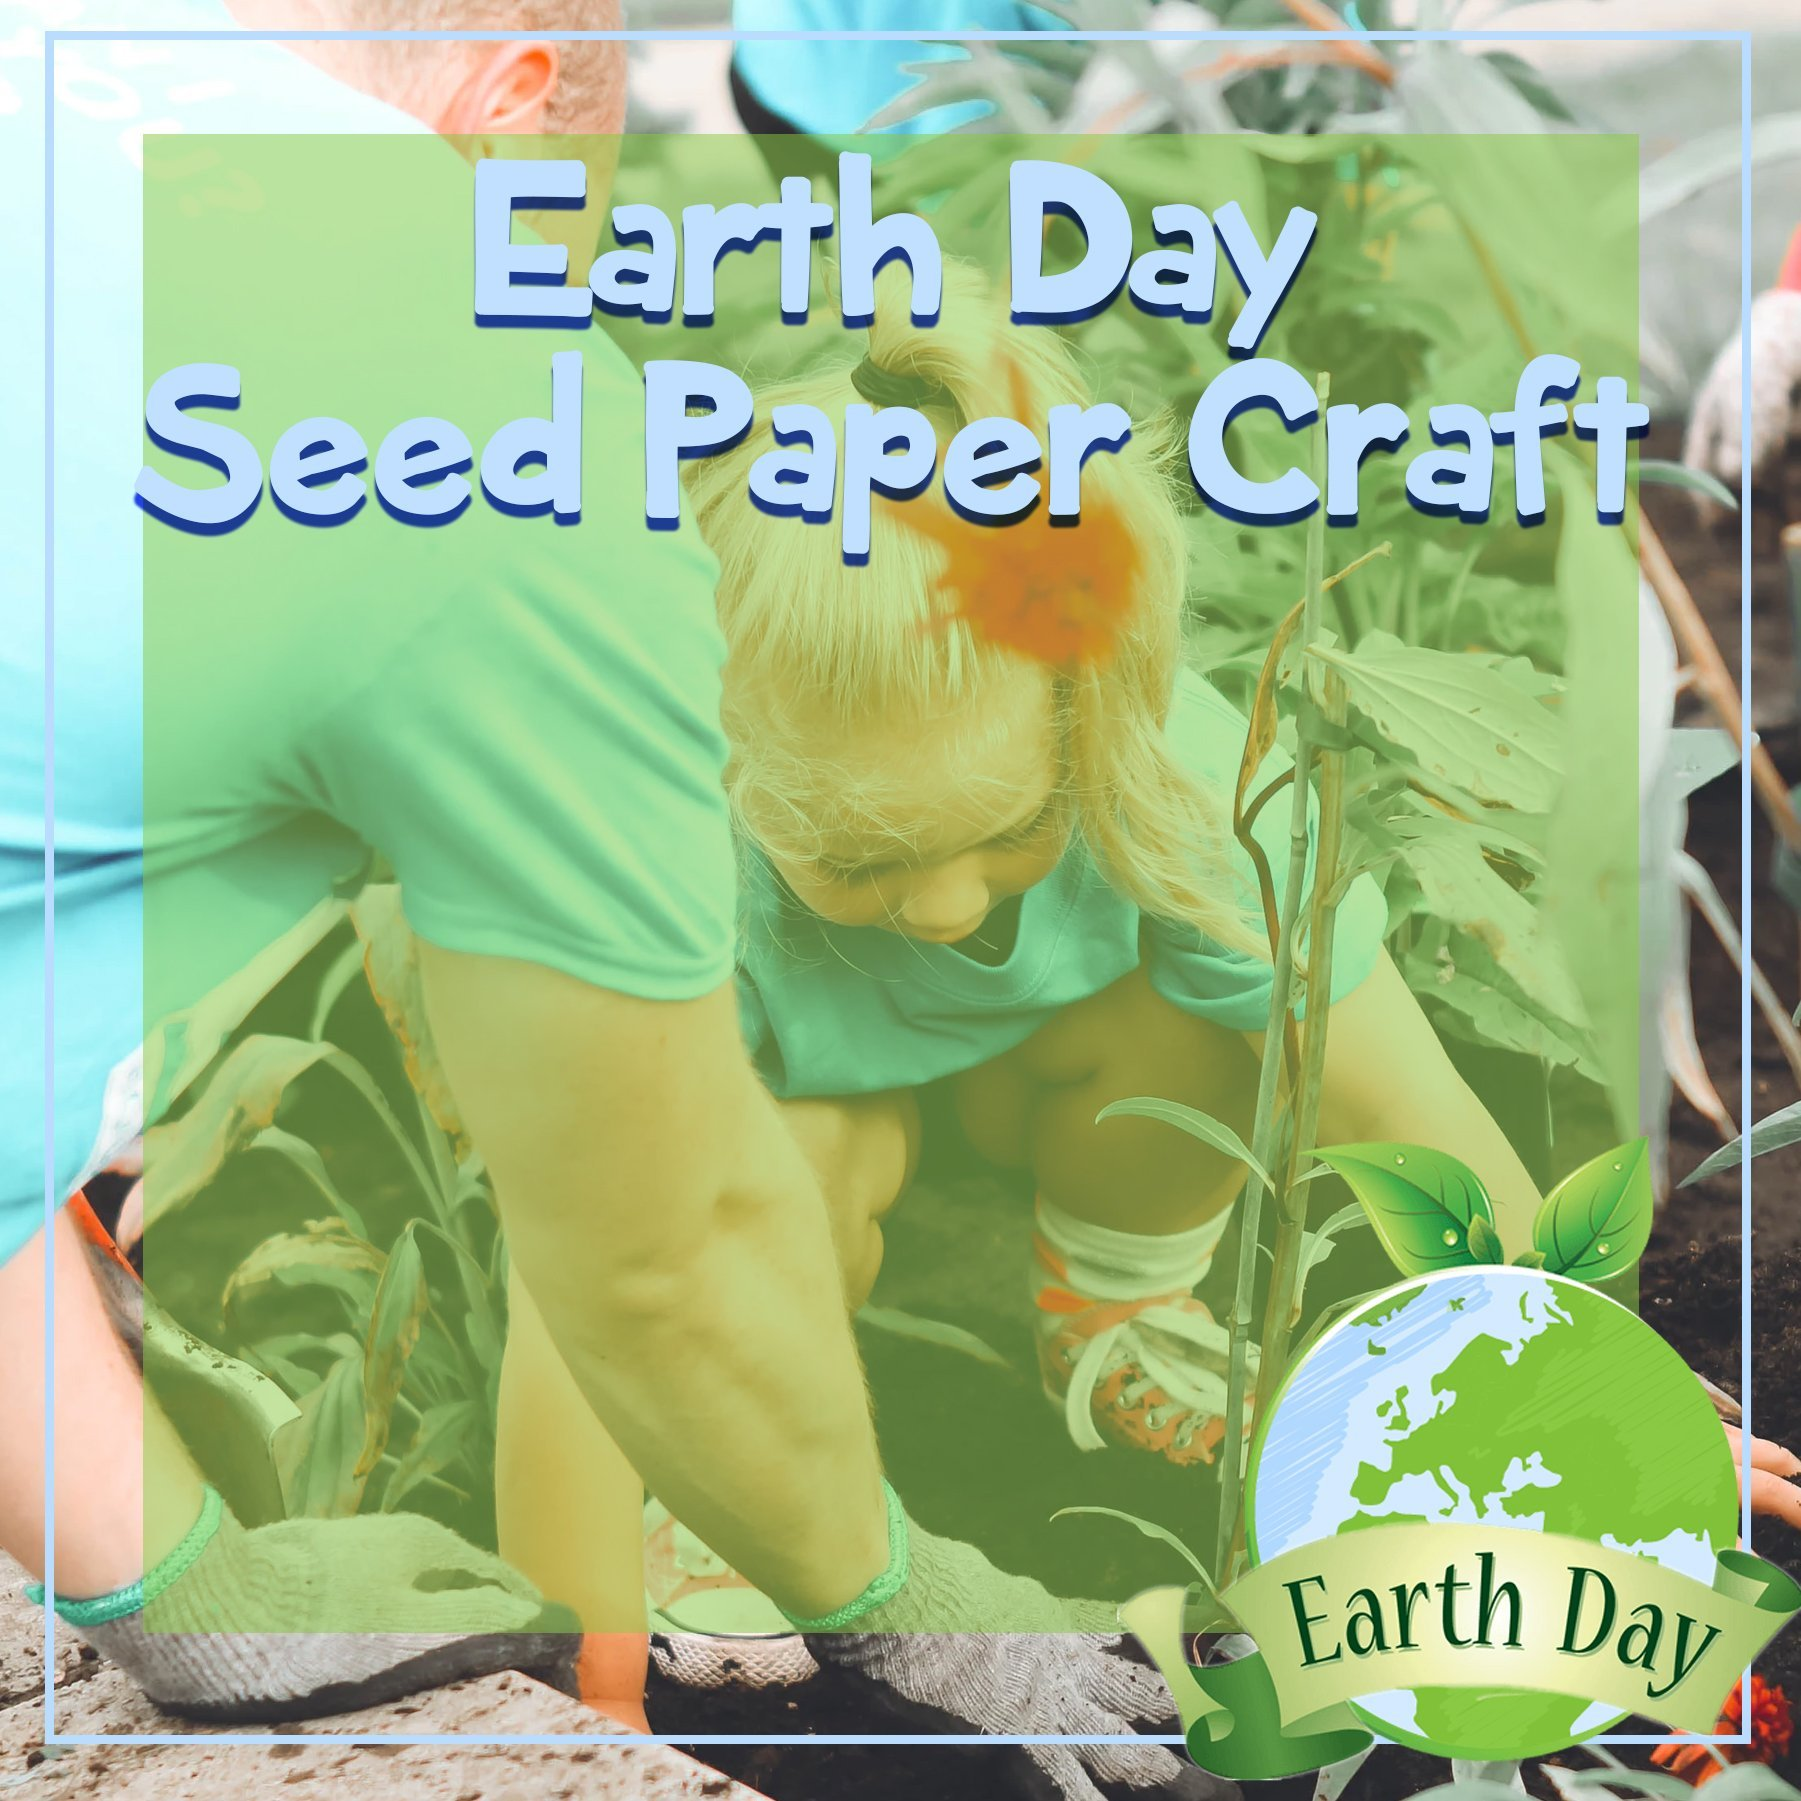 Earth Day – Seed Paper Craft